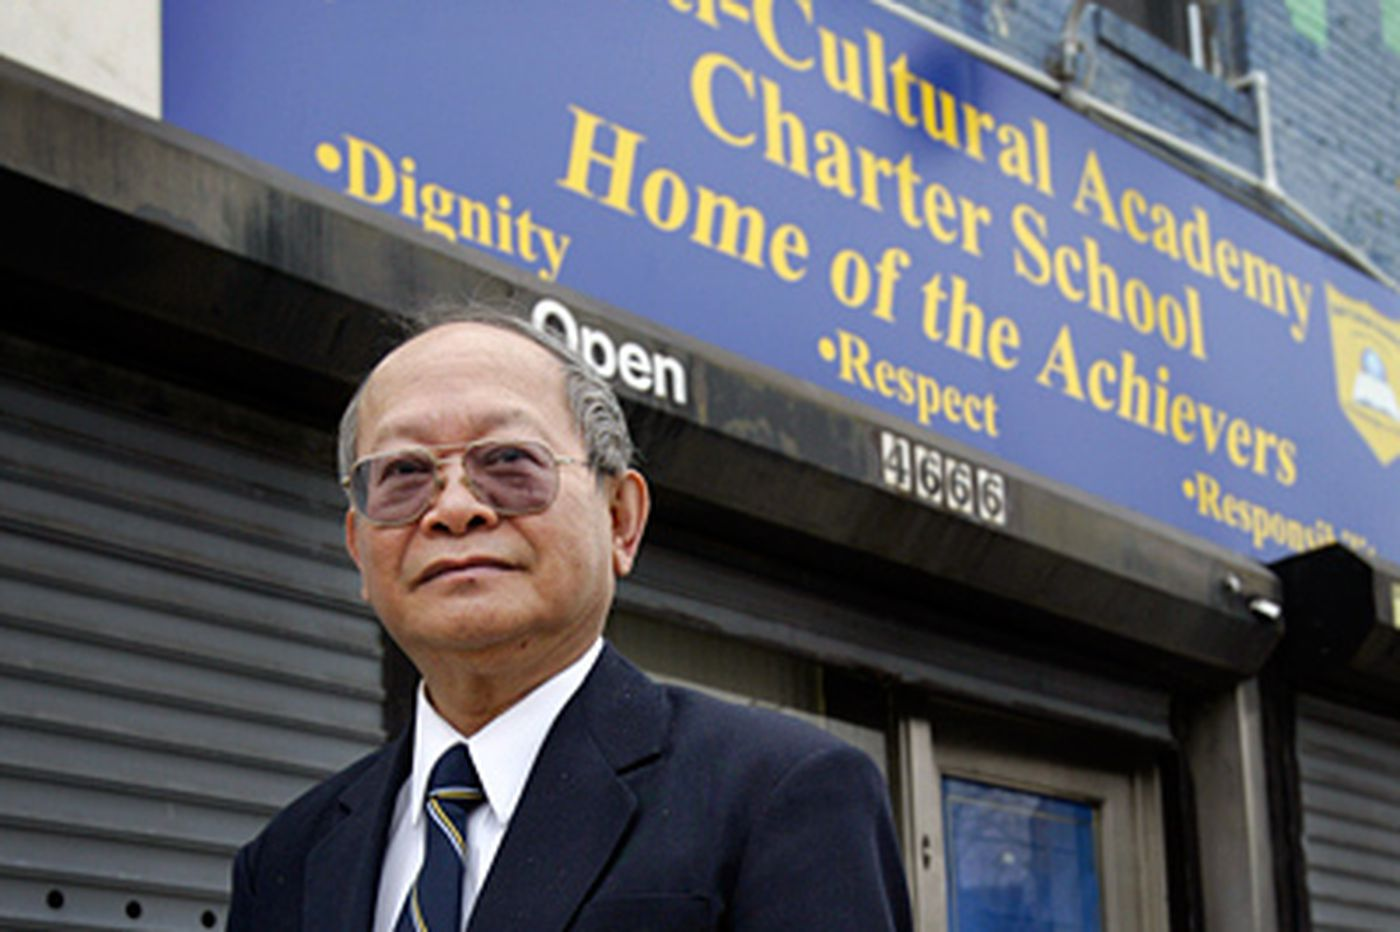 Pa. ethics panel says it didn't have evidence to prove violations by former charter school head